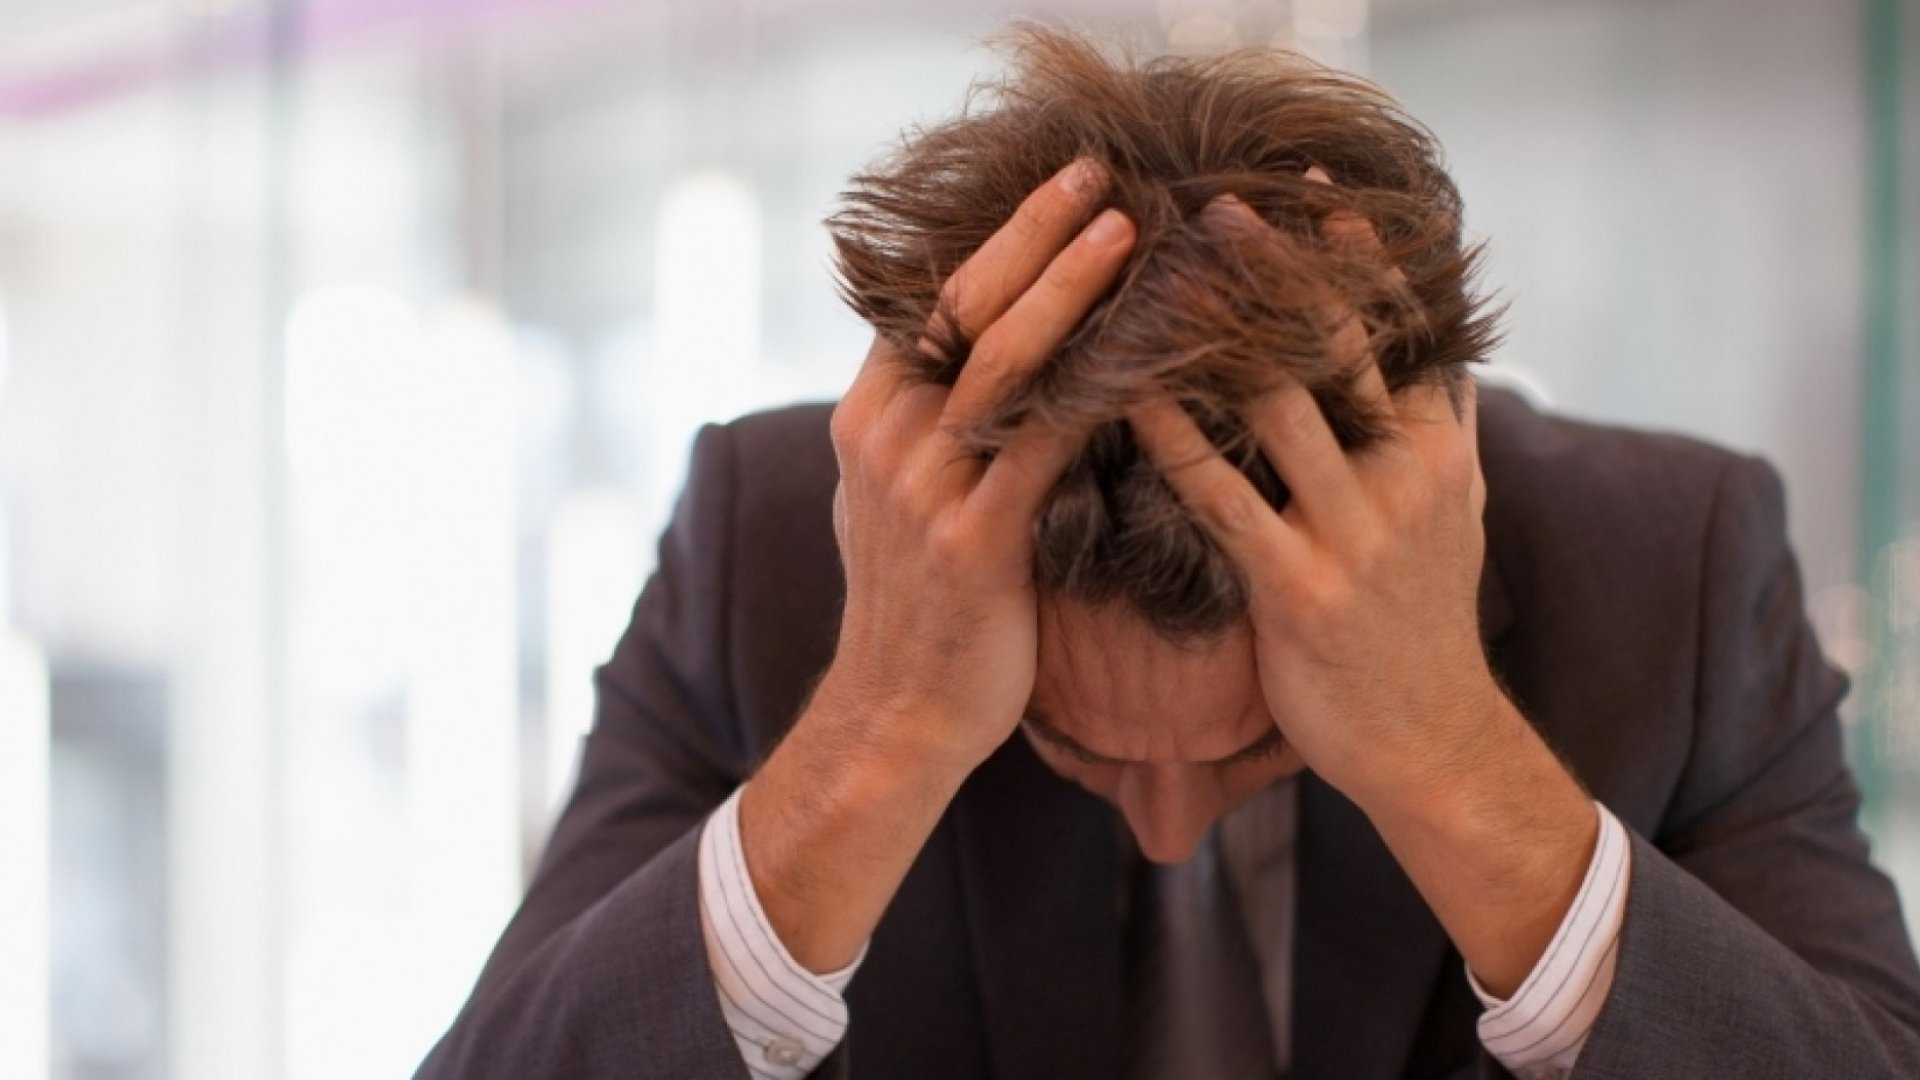 The Negative Side Effects of Entrepreneurial Failure